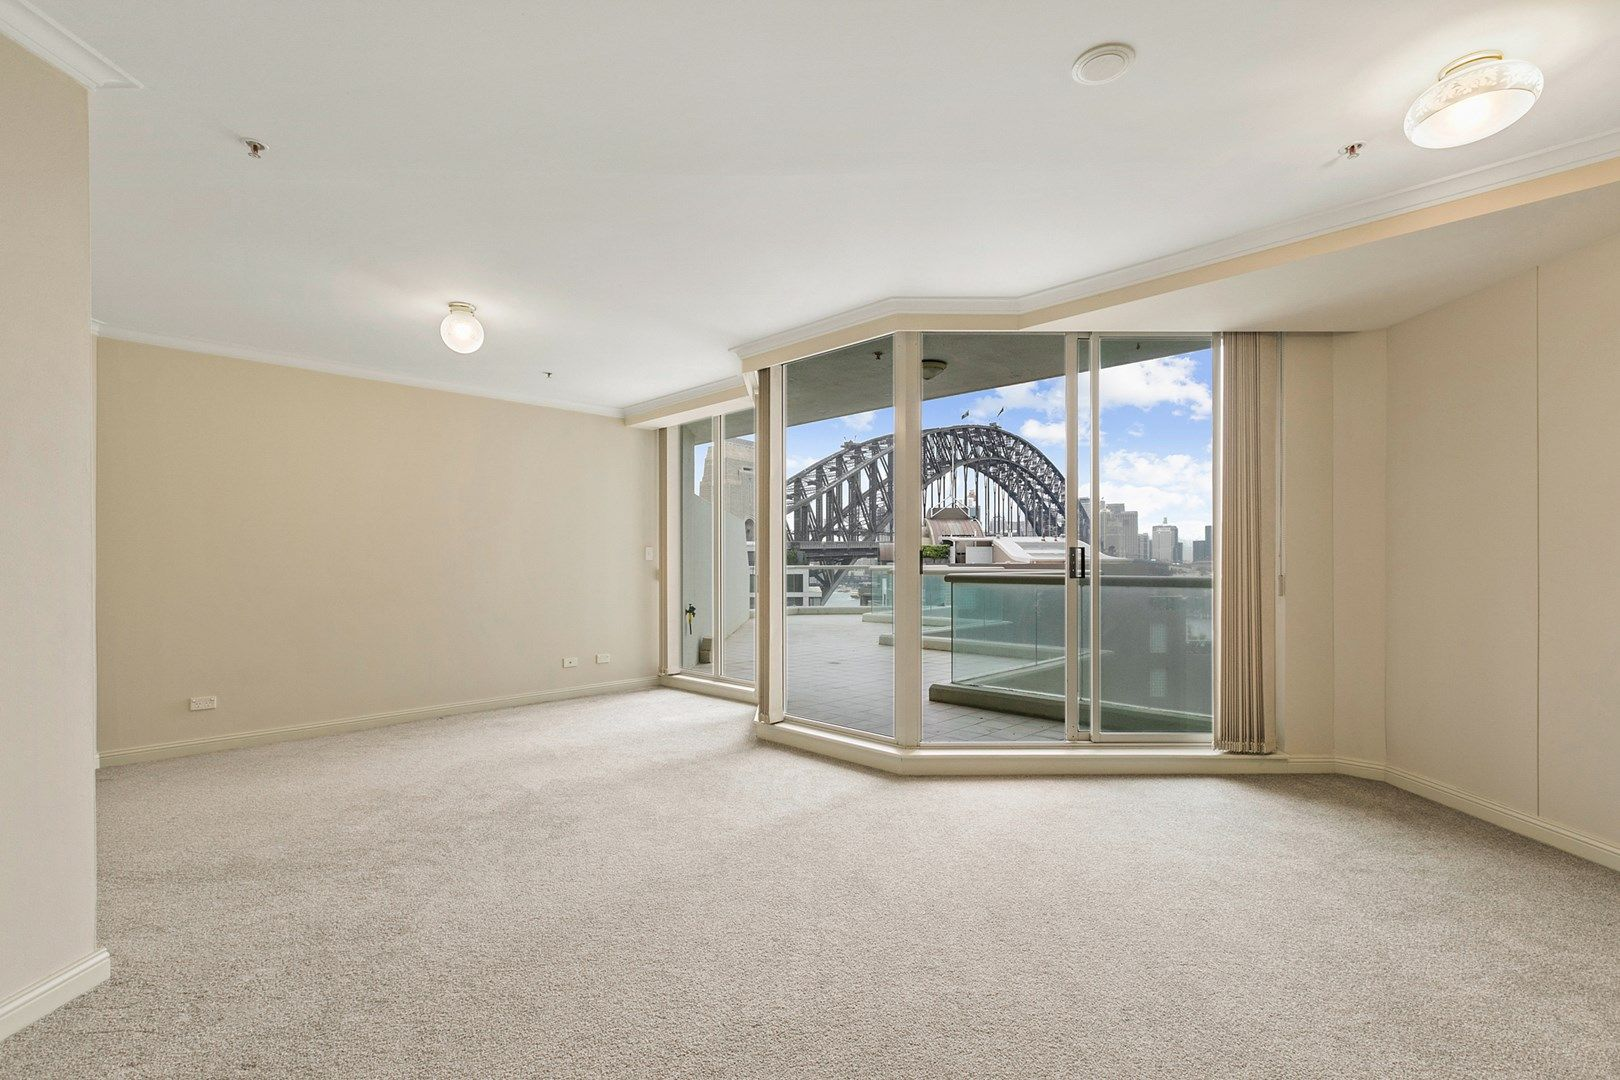 704/36-38 Alfred St, Milsons Point NSW 2061, Image 0